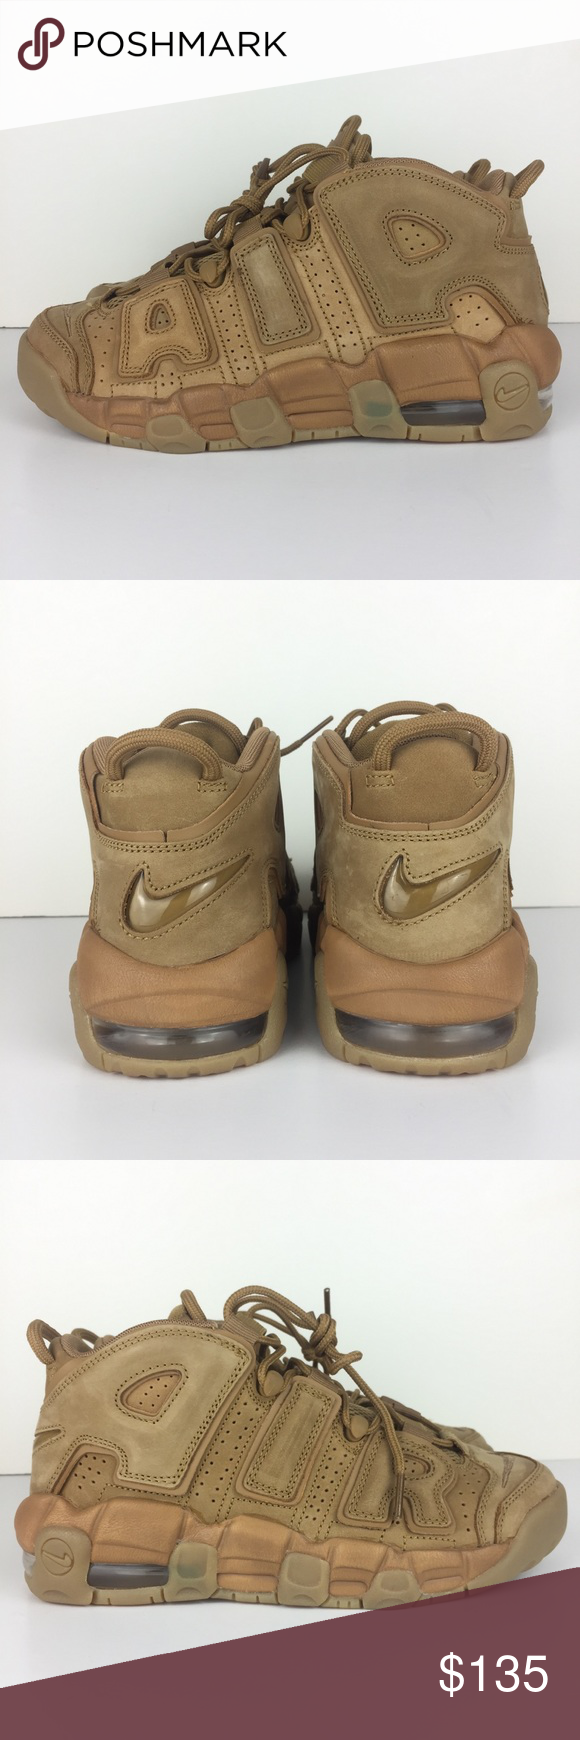 huge selection of 6eb88 cf442 Nike Air More Uptempo SE GS Youth Flax Wheat Gum Nike Air More Uptempo SE GS